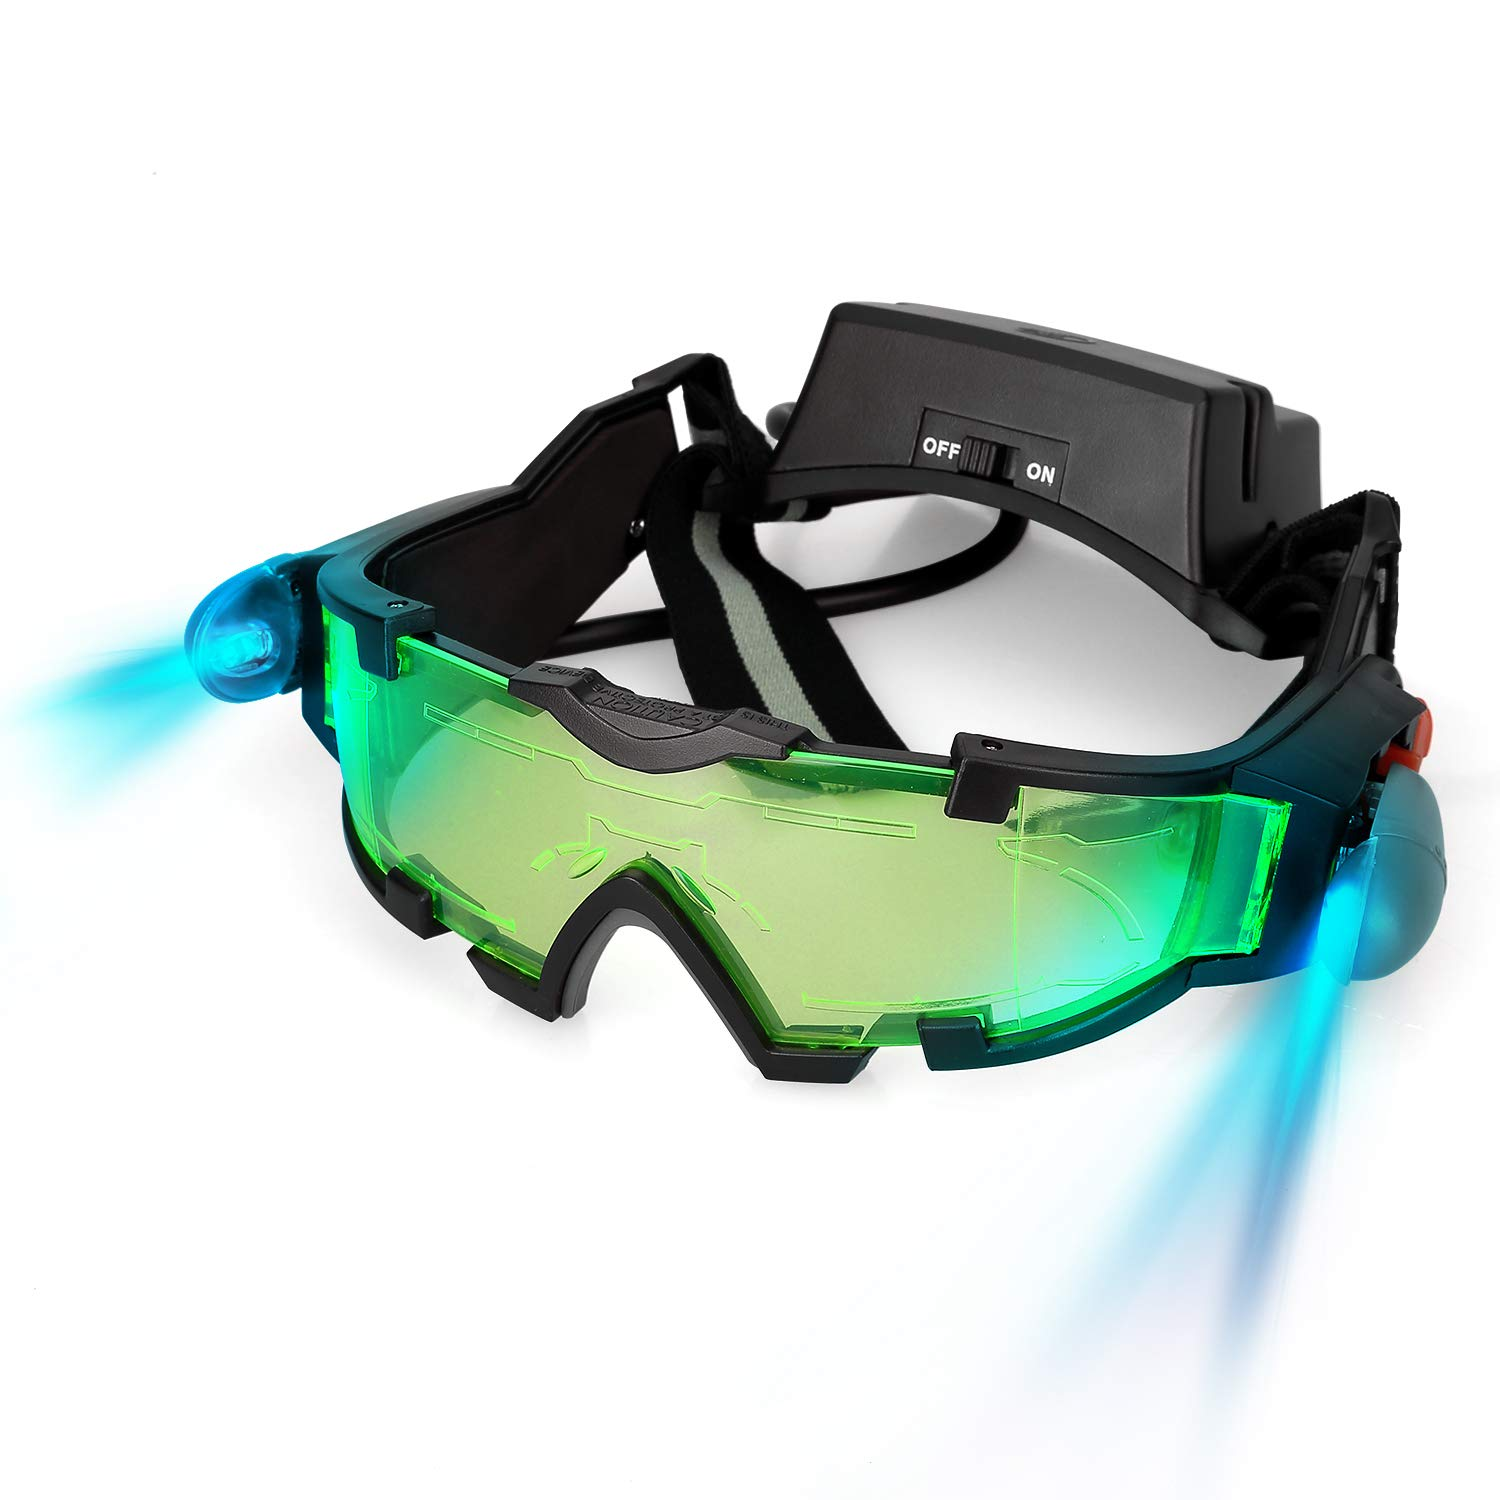 AGM Spy Night Vision Goggles, Adjustable Discovery Kids Night Goggles with Flip-Out Lights Green Lens